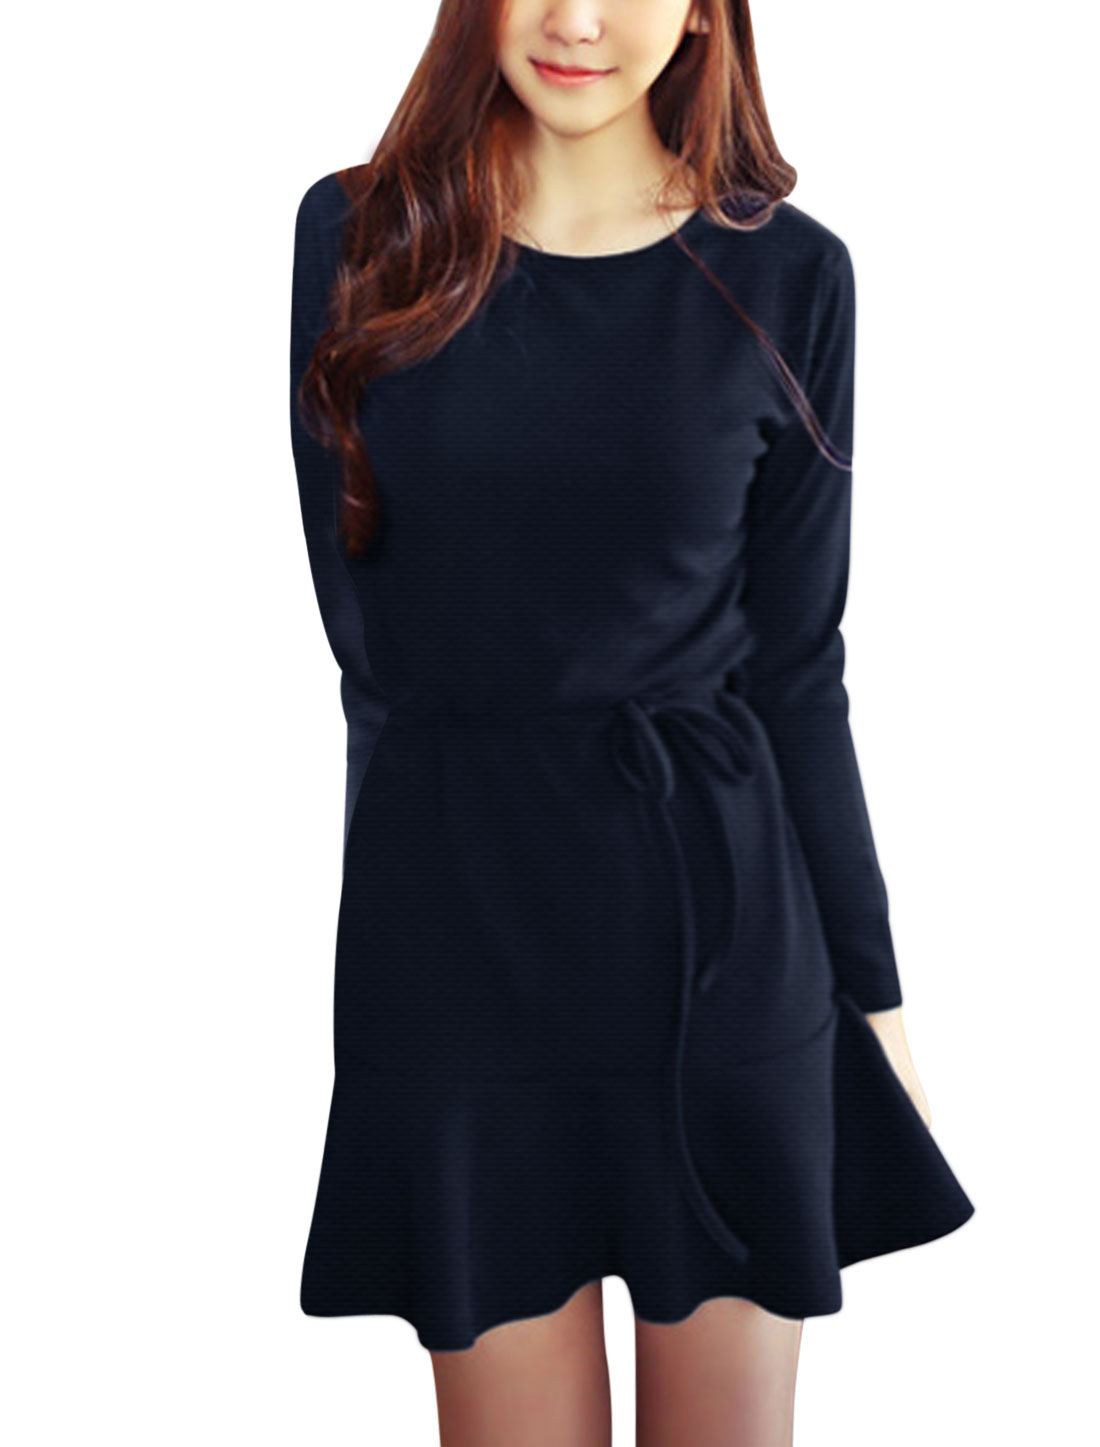 Ladies Navy Blue Round Neck Long Sleeves Pullover w Waist String Short Dress S